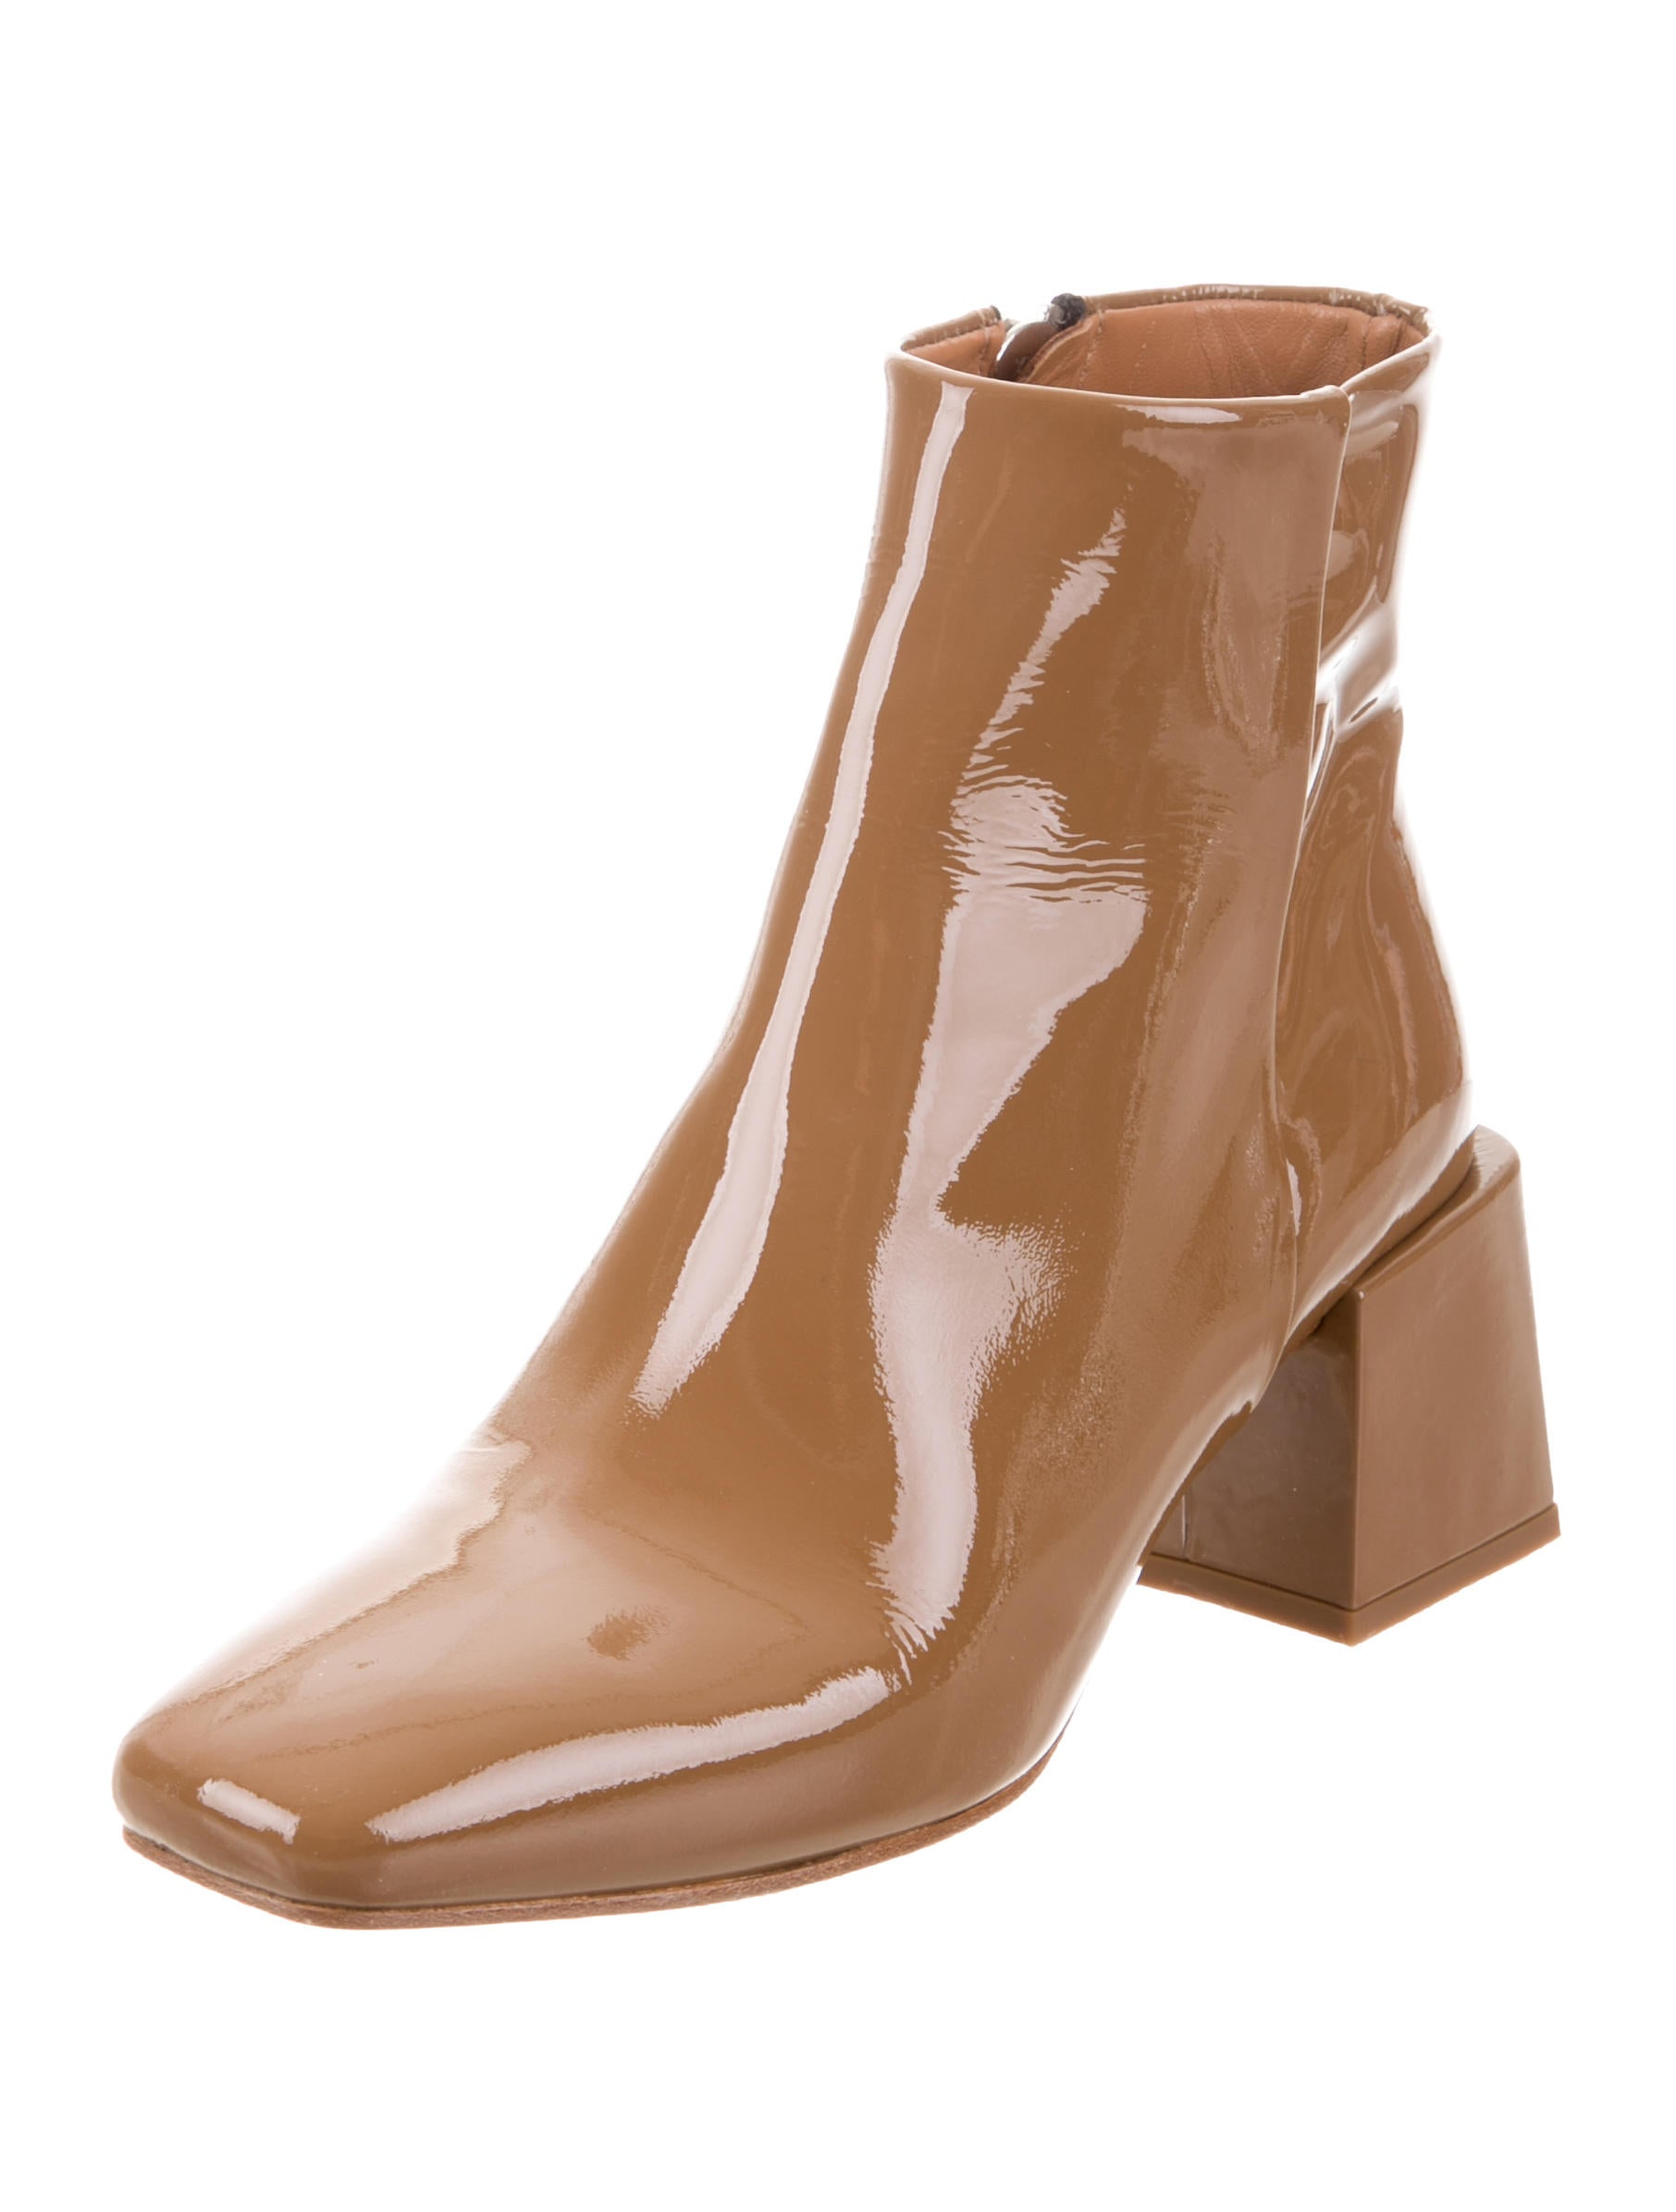 LOQ Patent Leather Round-Toe Ankle Boots cost sale online with paypal online cheap view CzTkzBlZ